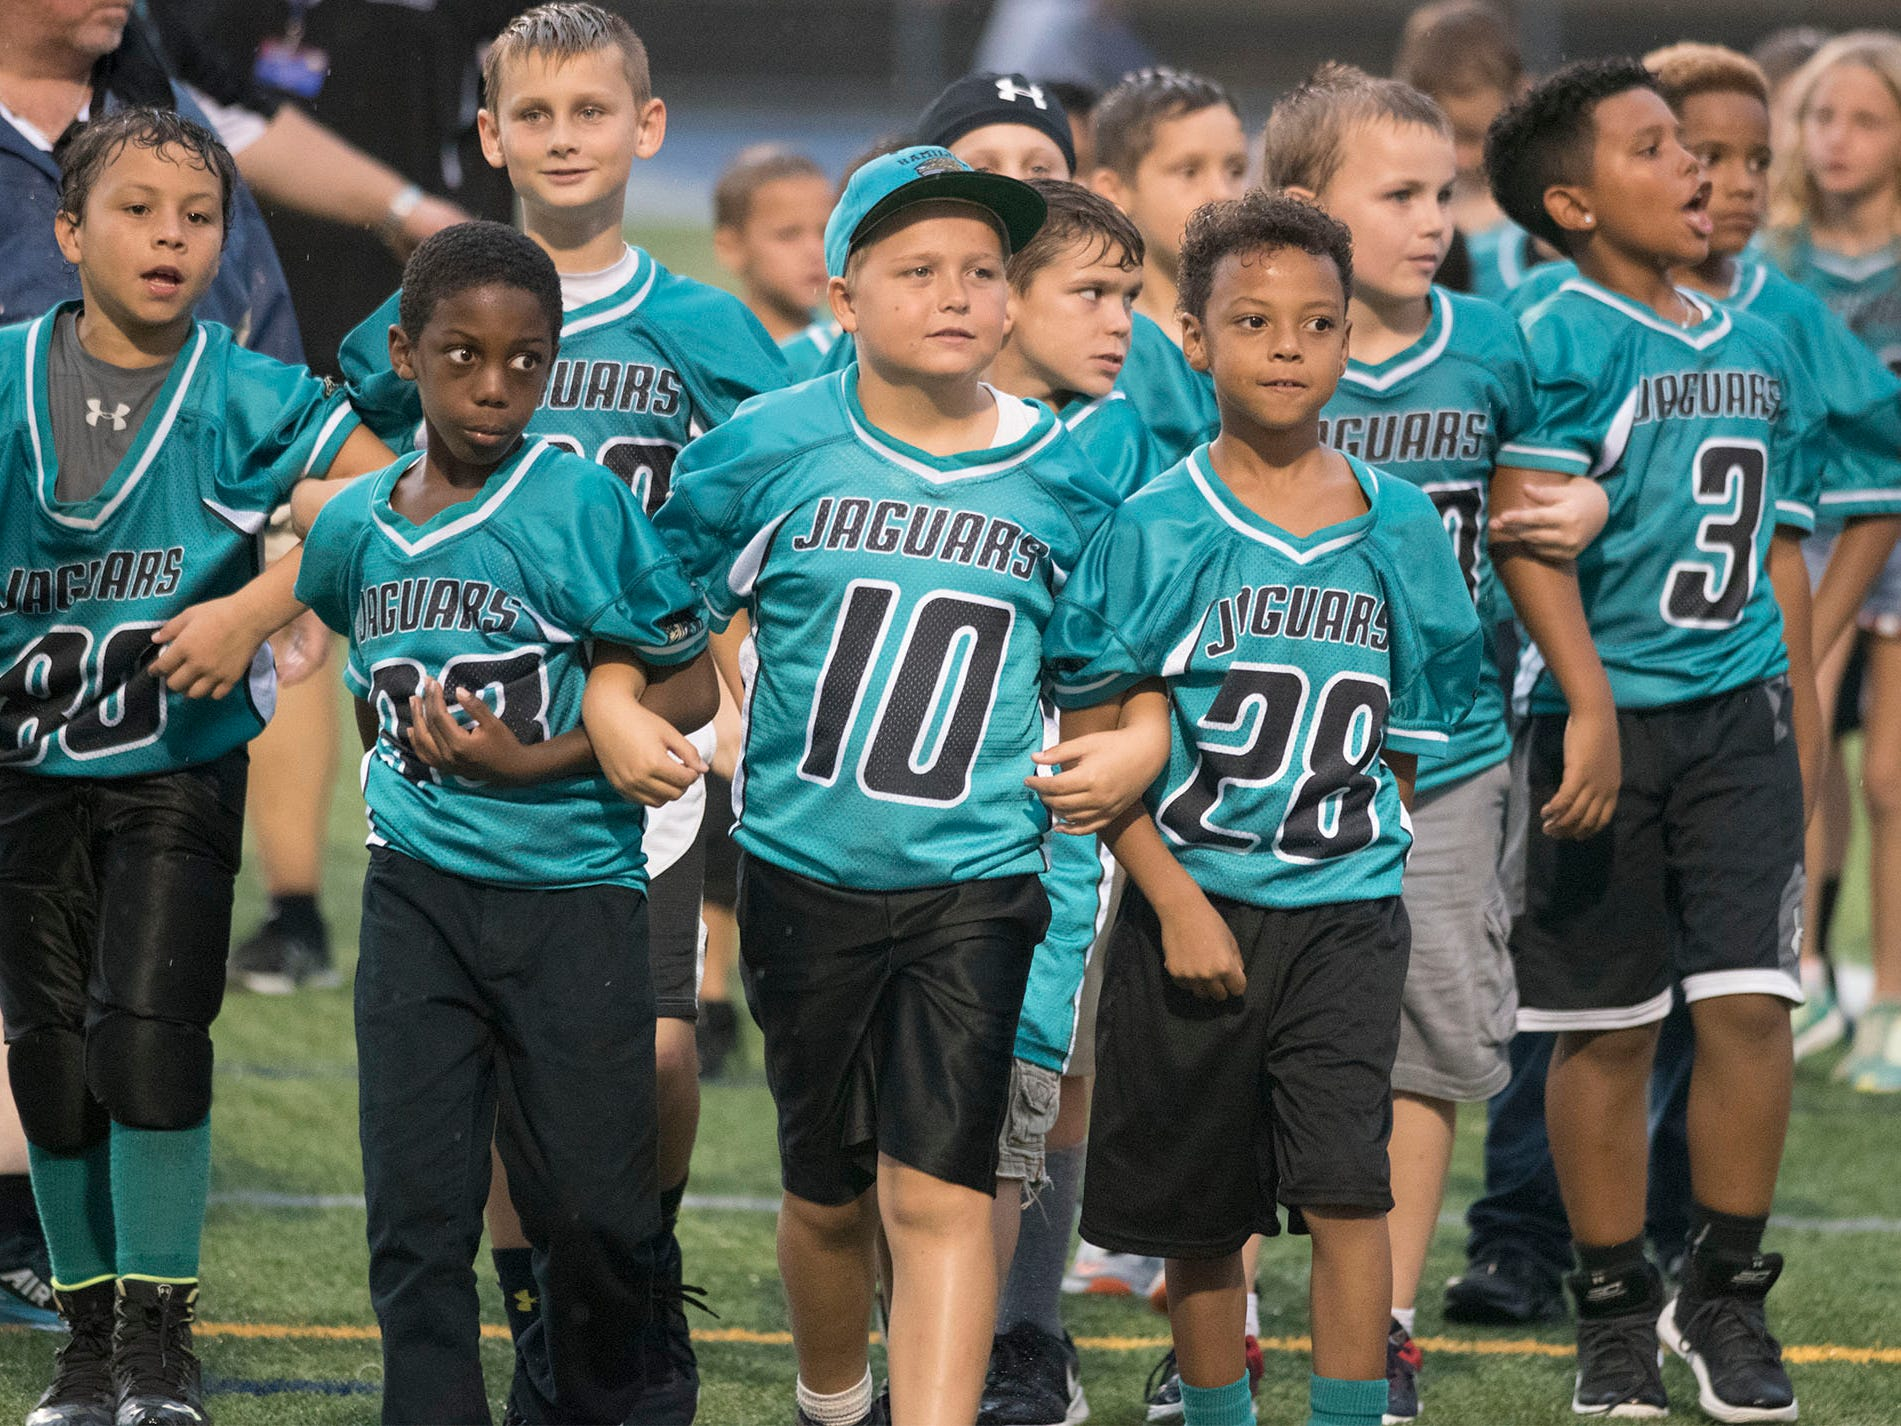 Youth football players were on hand for the Trojans game. Chambersburg defeated Red Lion 28-19 in PIAA football on Friday, Sept. 7, 2018.